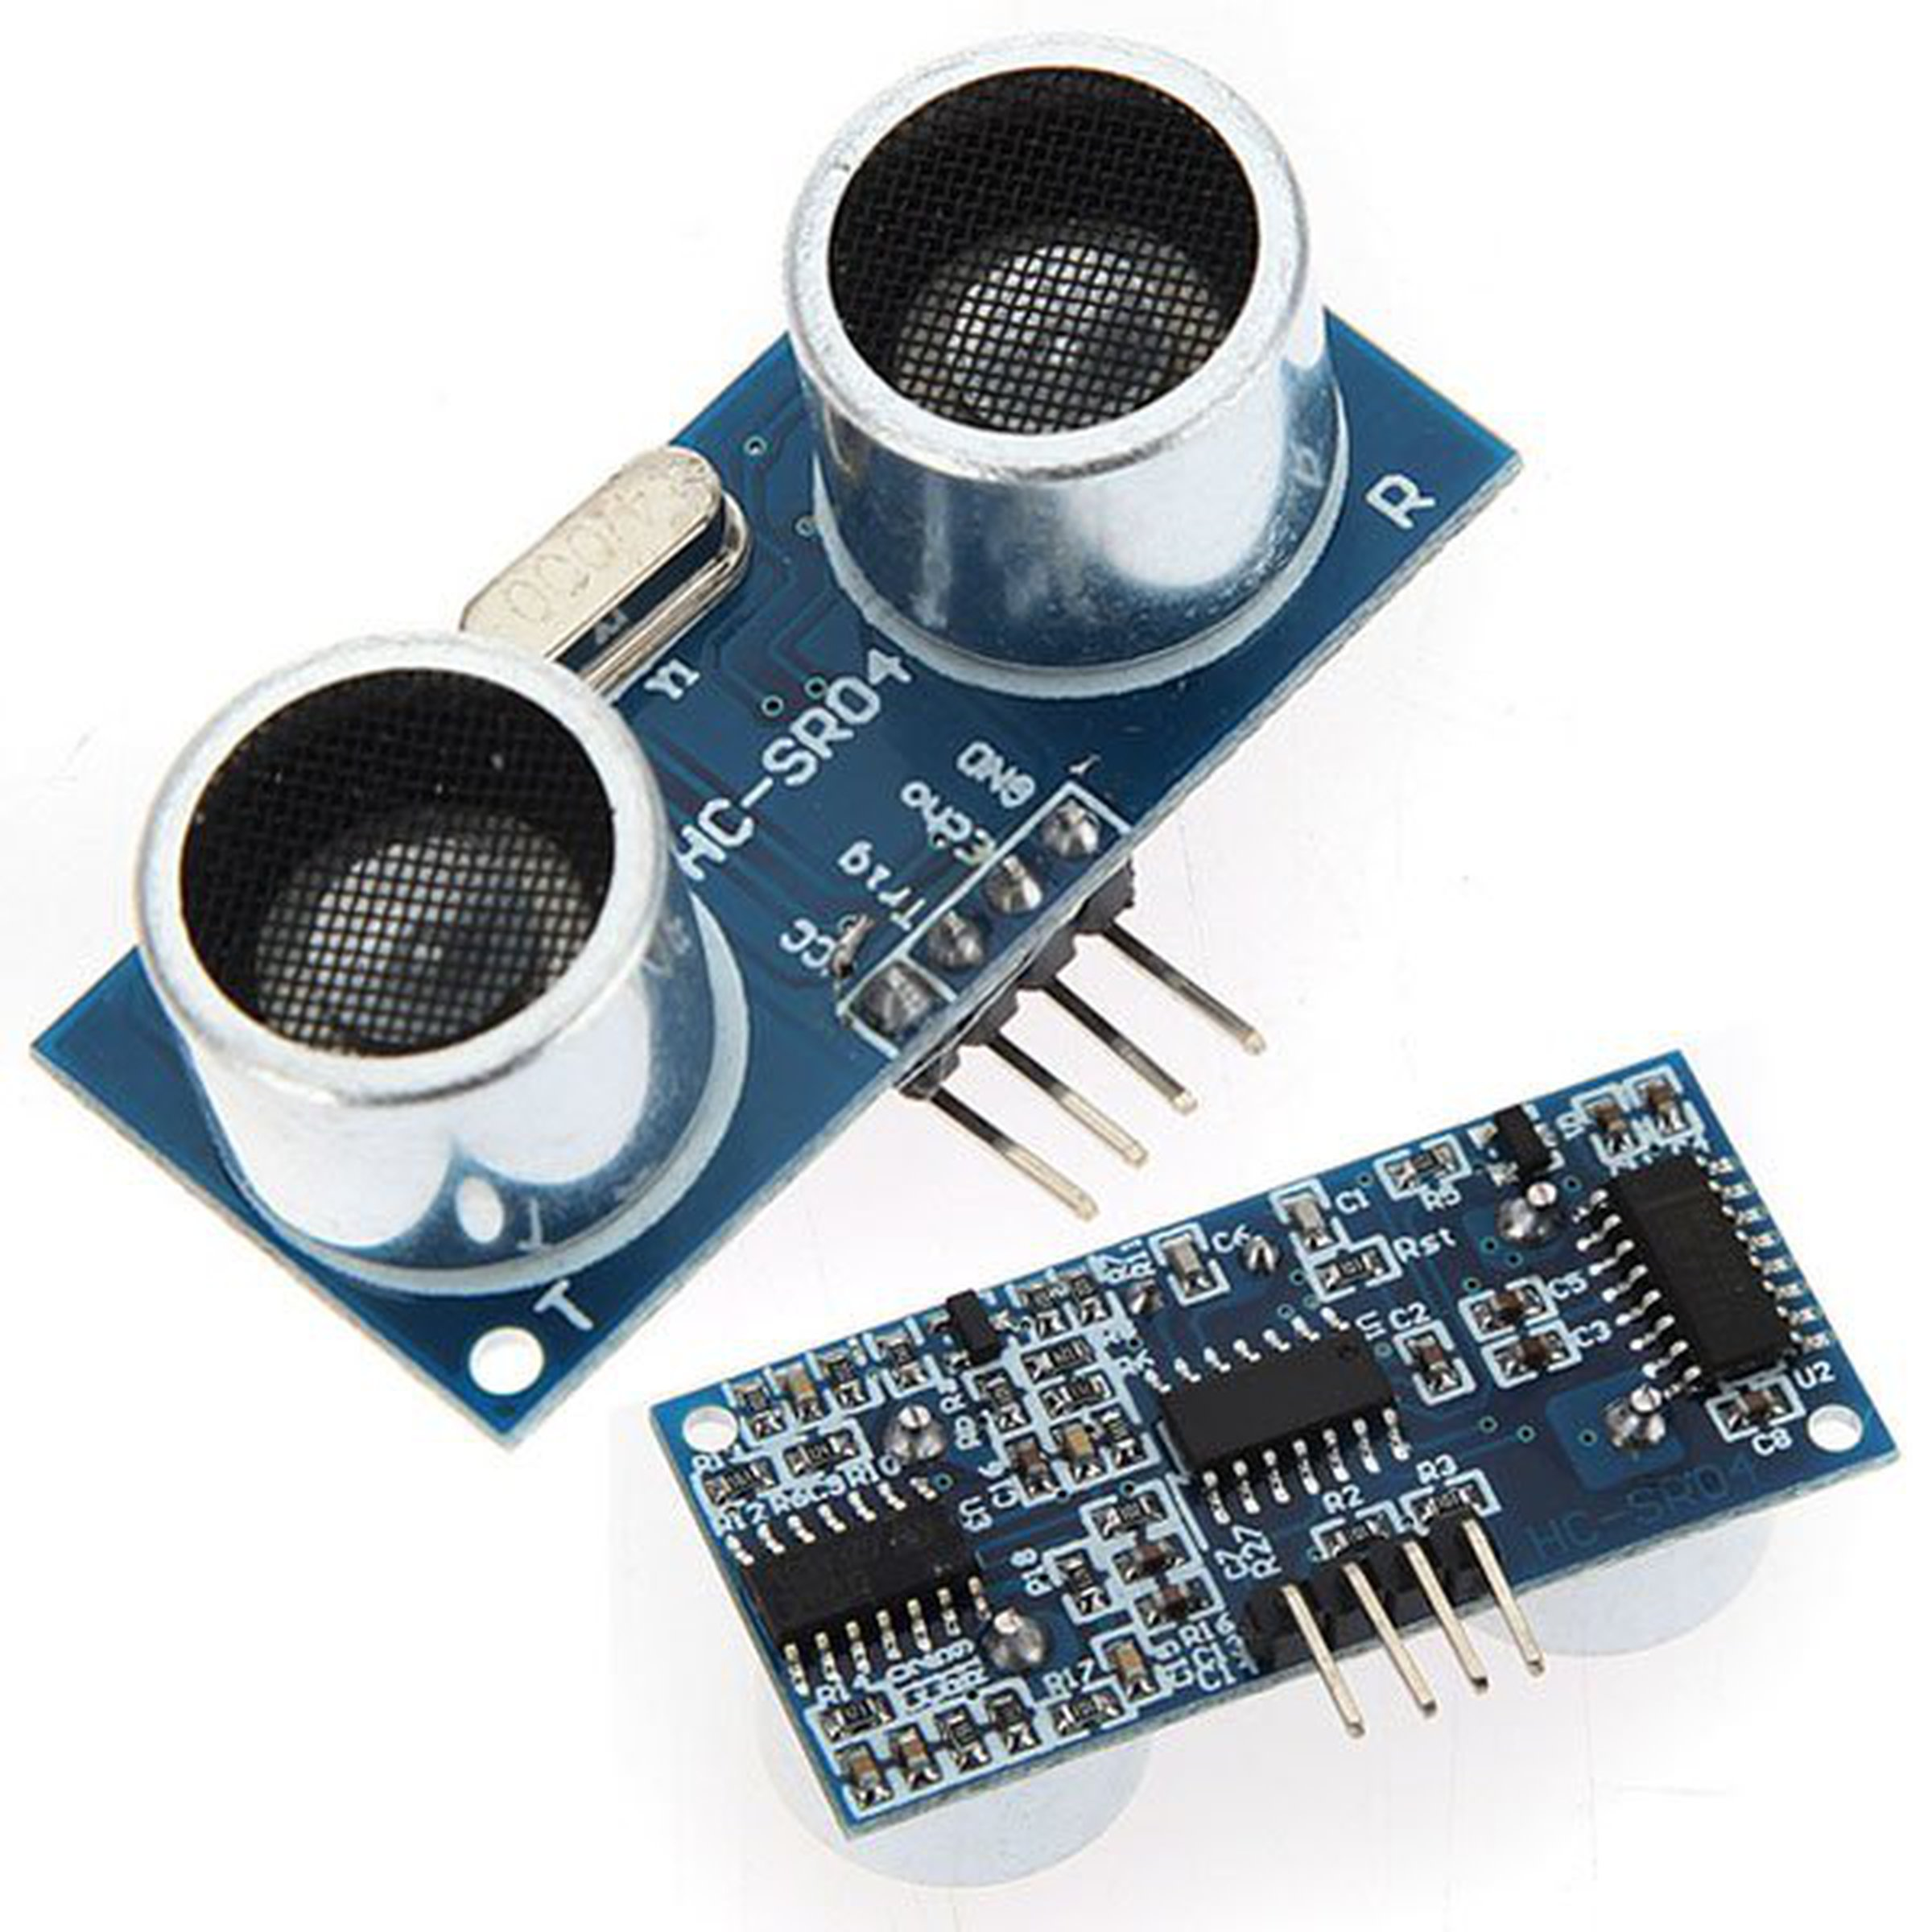 ultrasonic proximity detector Ultrasonic proximity sensors from automationdirect, the best value in industrial automation - low prices, fast shipping, and free award-winning service.